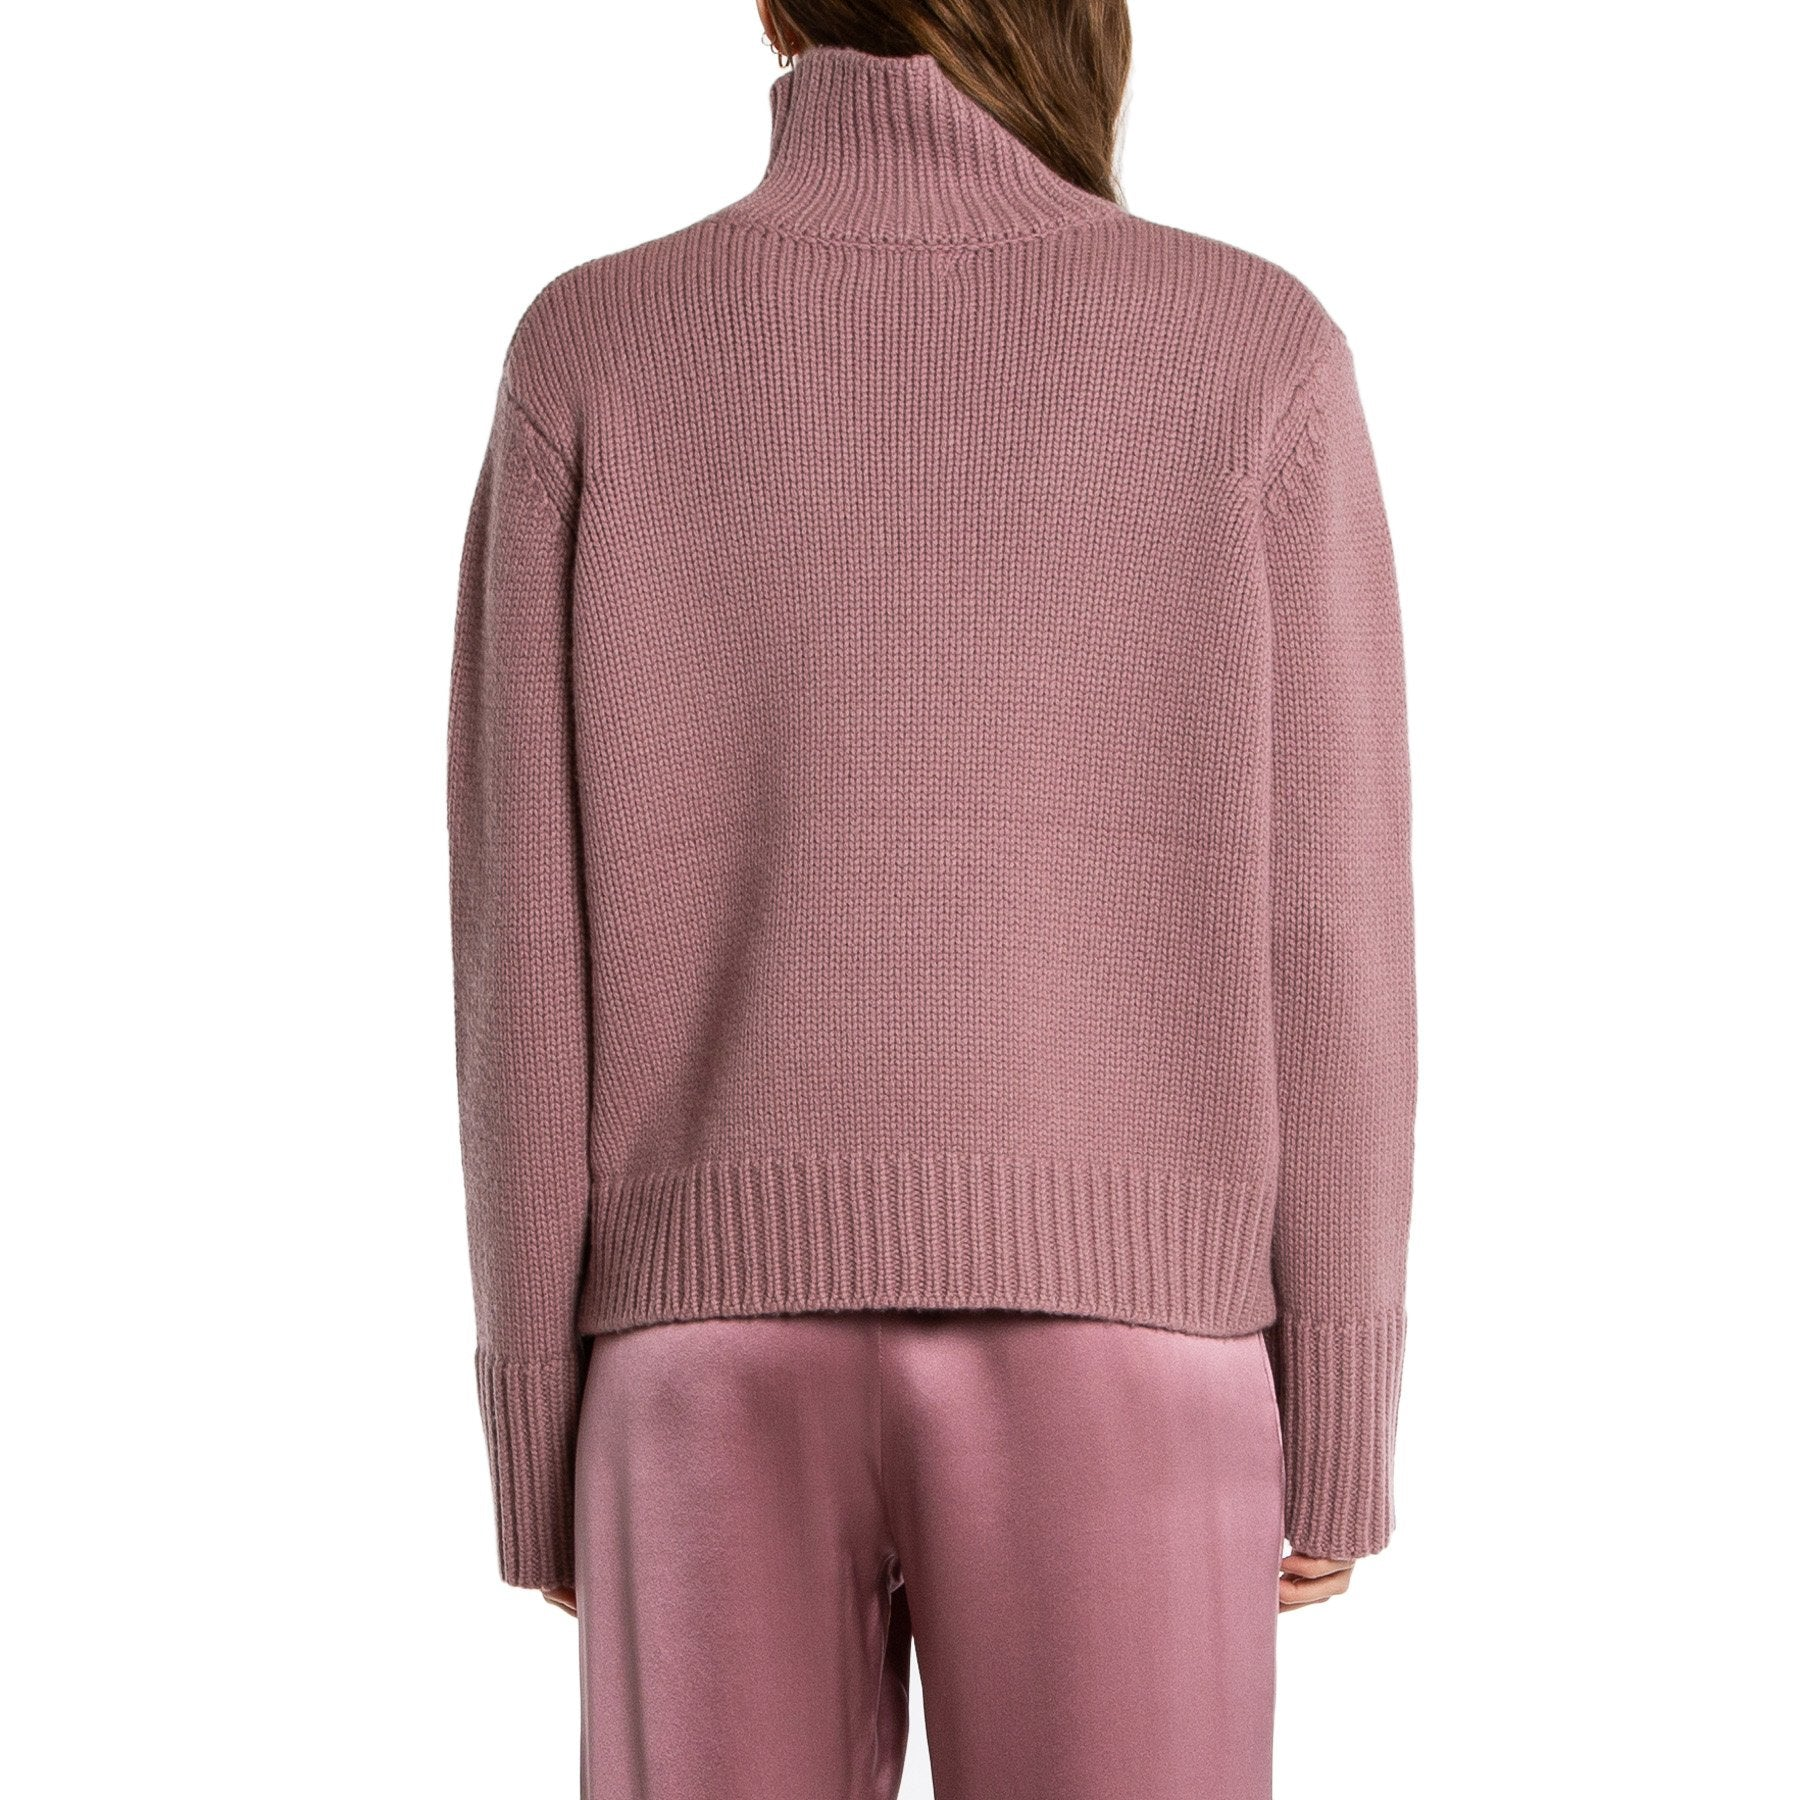 SABLYN | SAWYER ROSE TURTLENECK